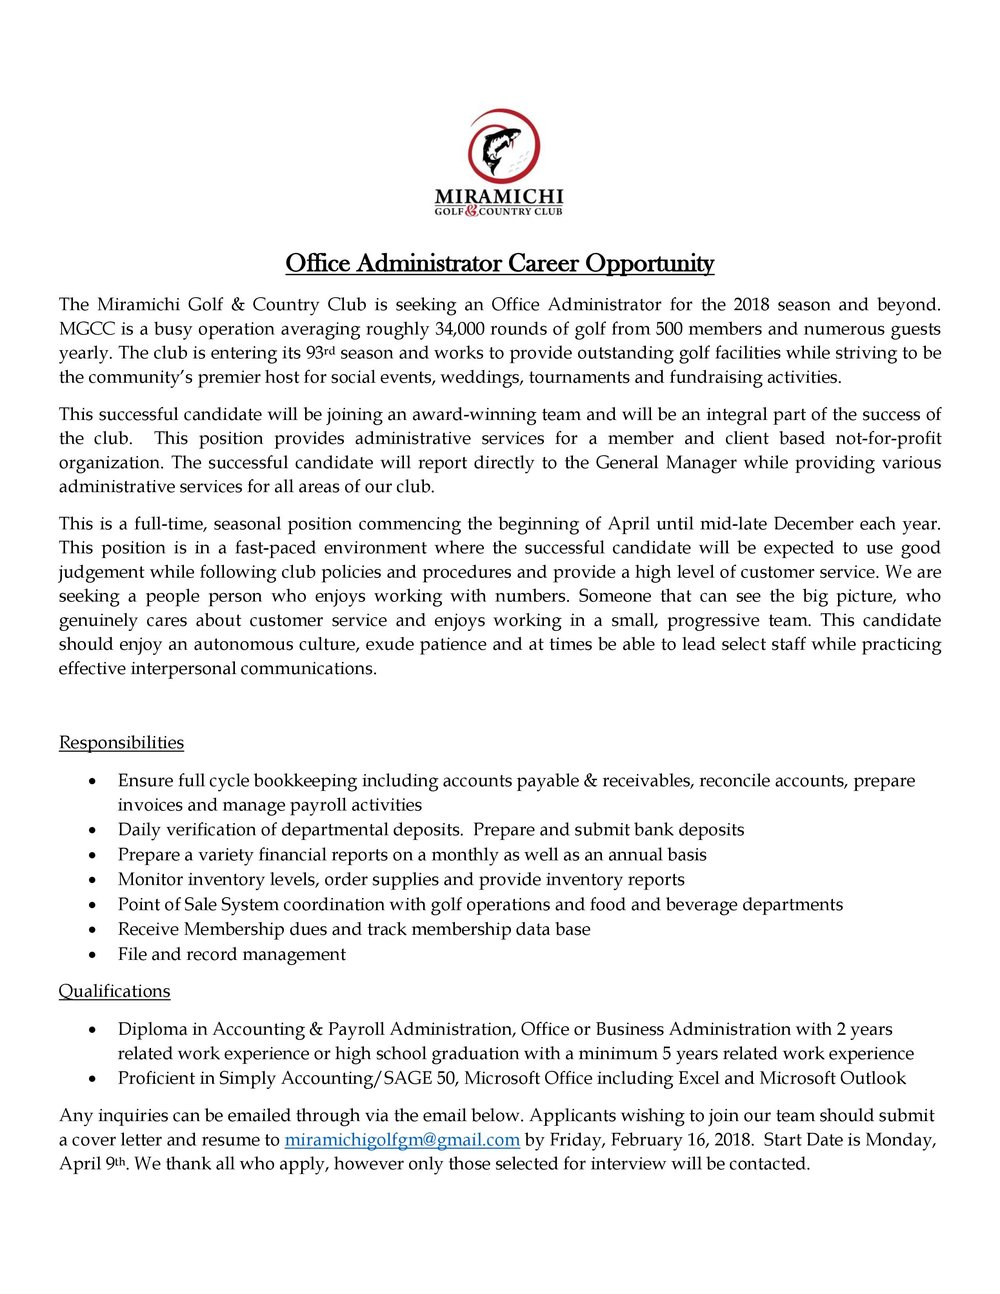 Office Administrator Career Opportunity.jpg